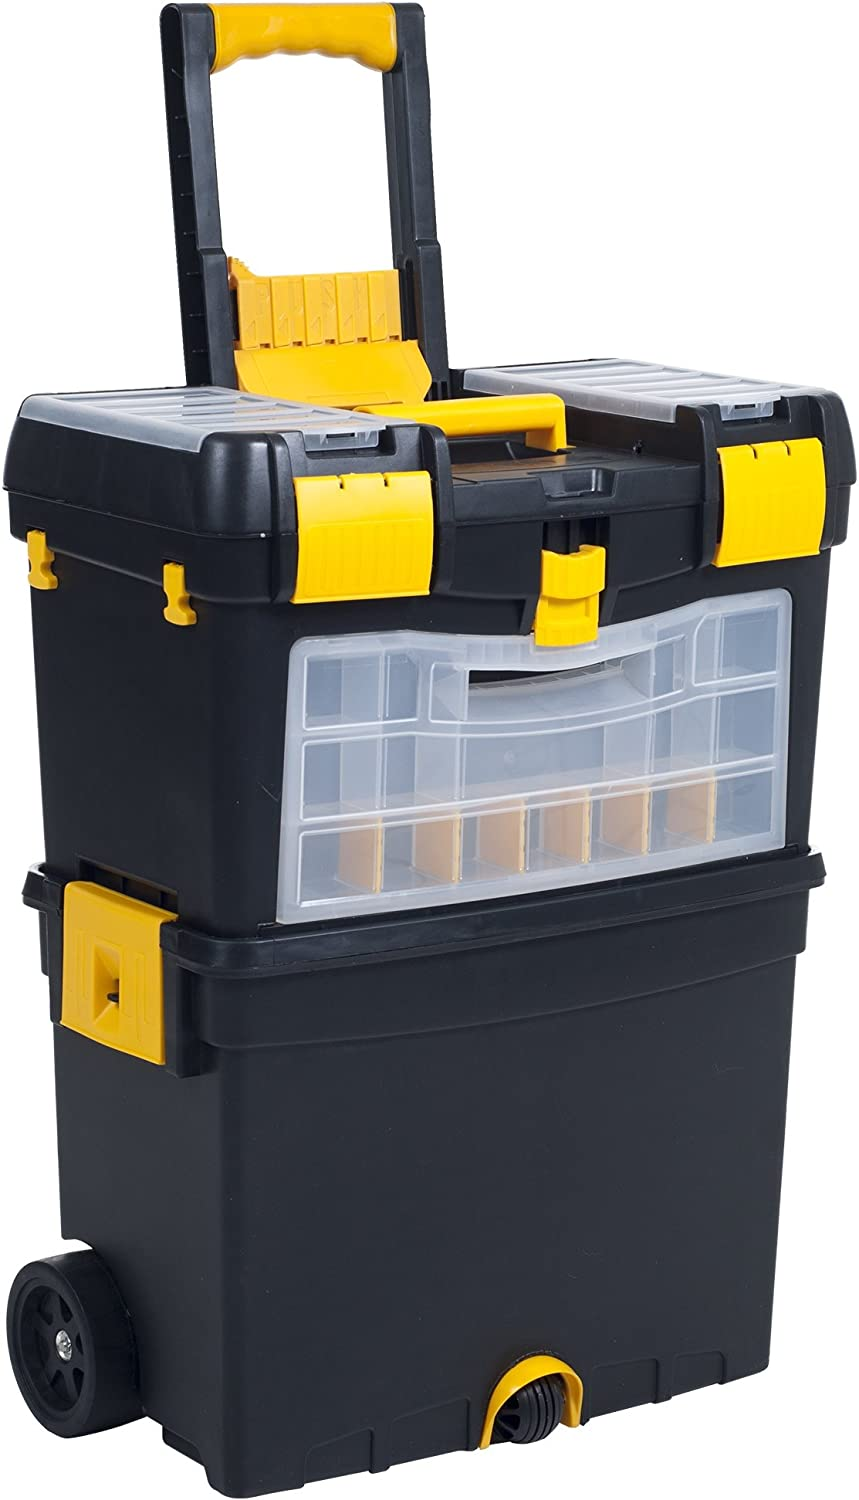 Stalwart Rolling Tool Box with Wheels